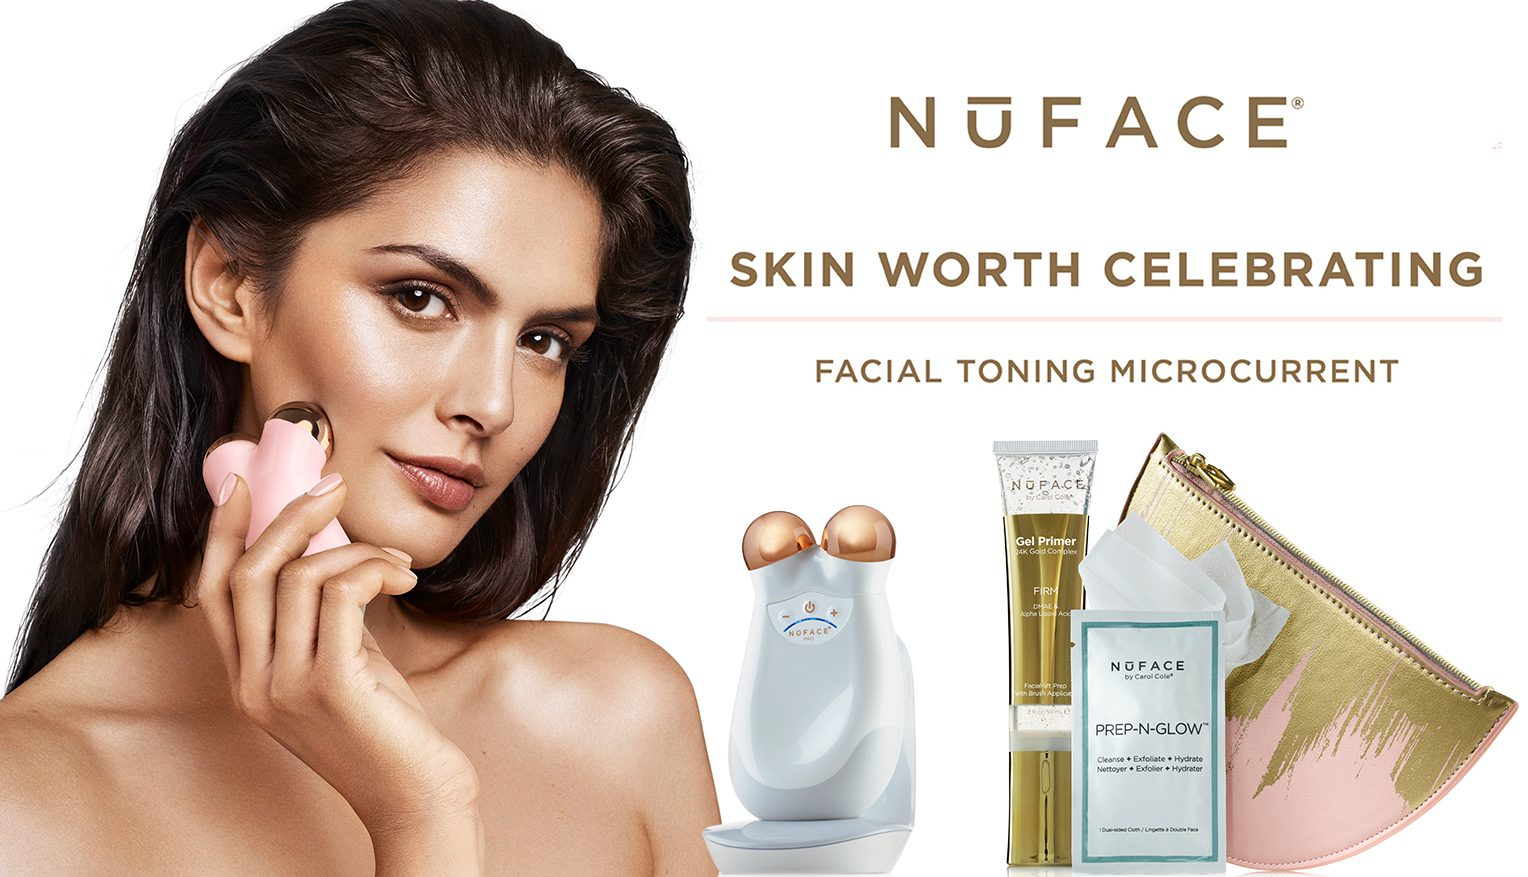 NuFace skin worth celebrating